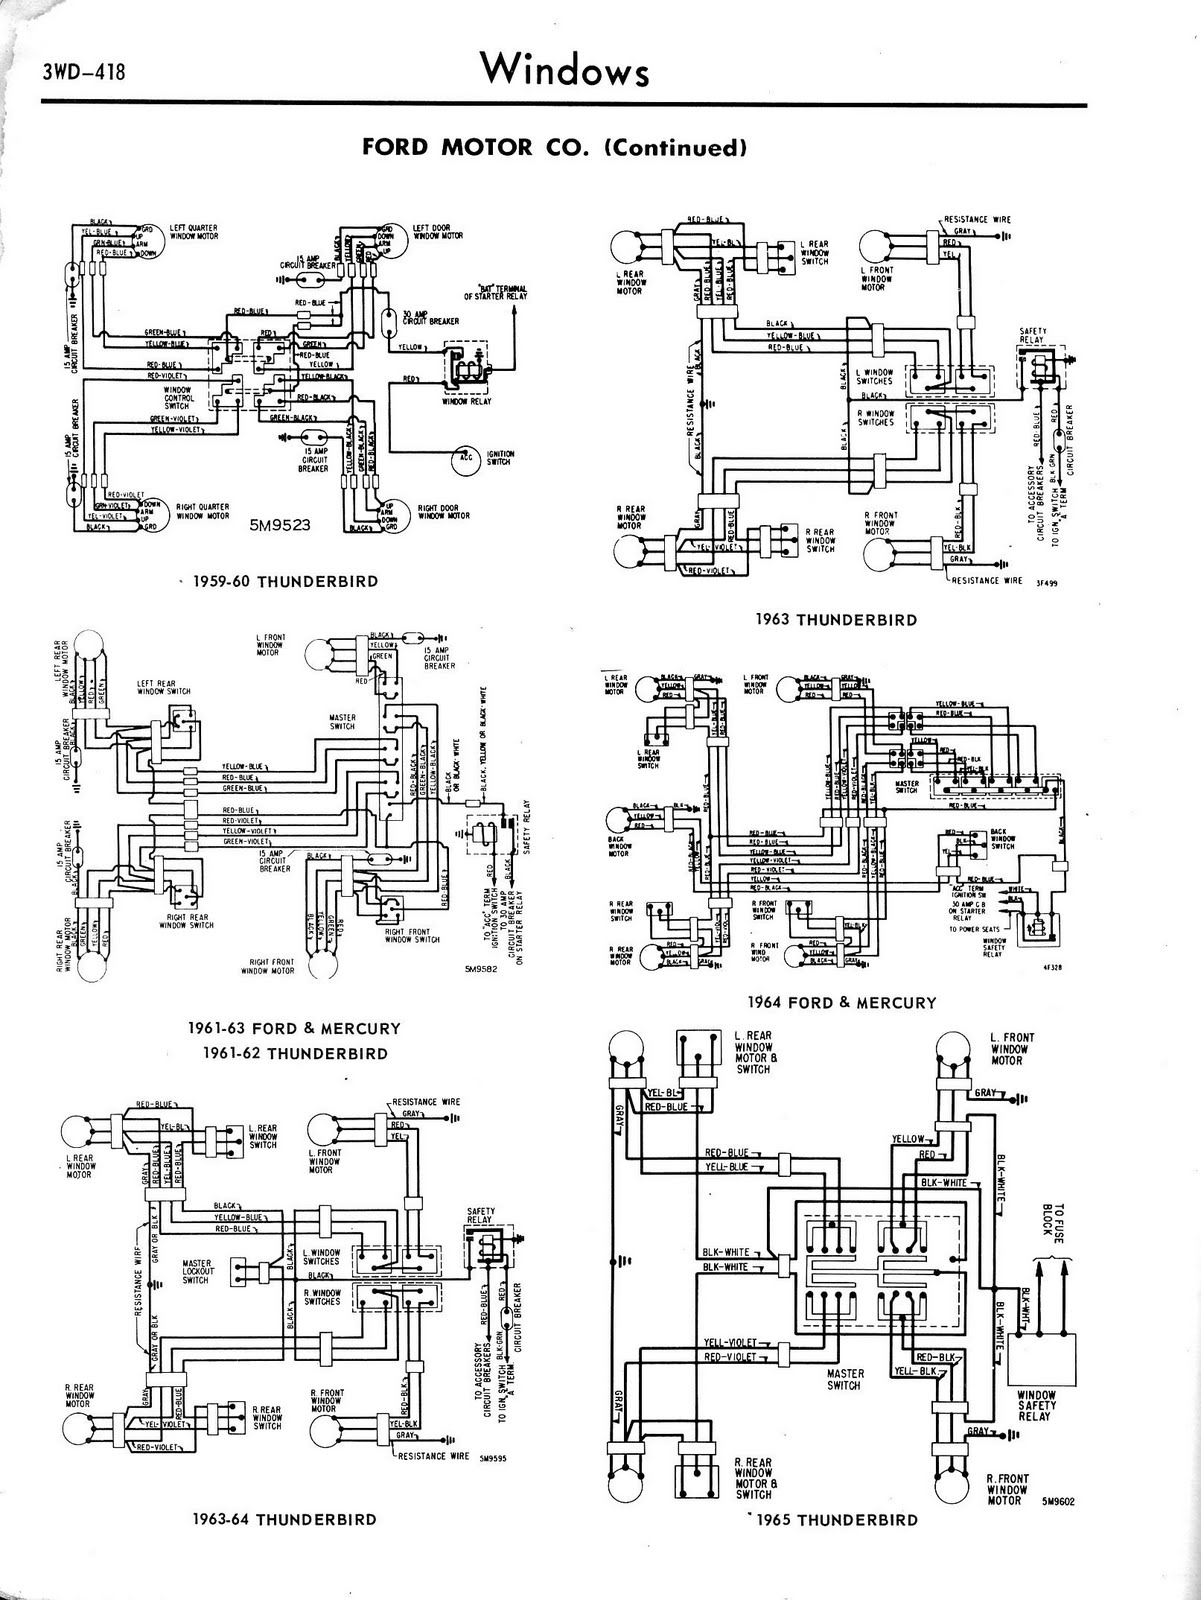 Alternator Wiring Diagram Chevy Exterior Regulator 50 Vn 1965 Ford Thunderbird Etivnli 100 Trade Tips Efi